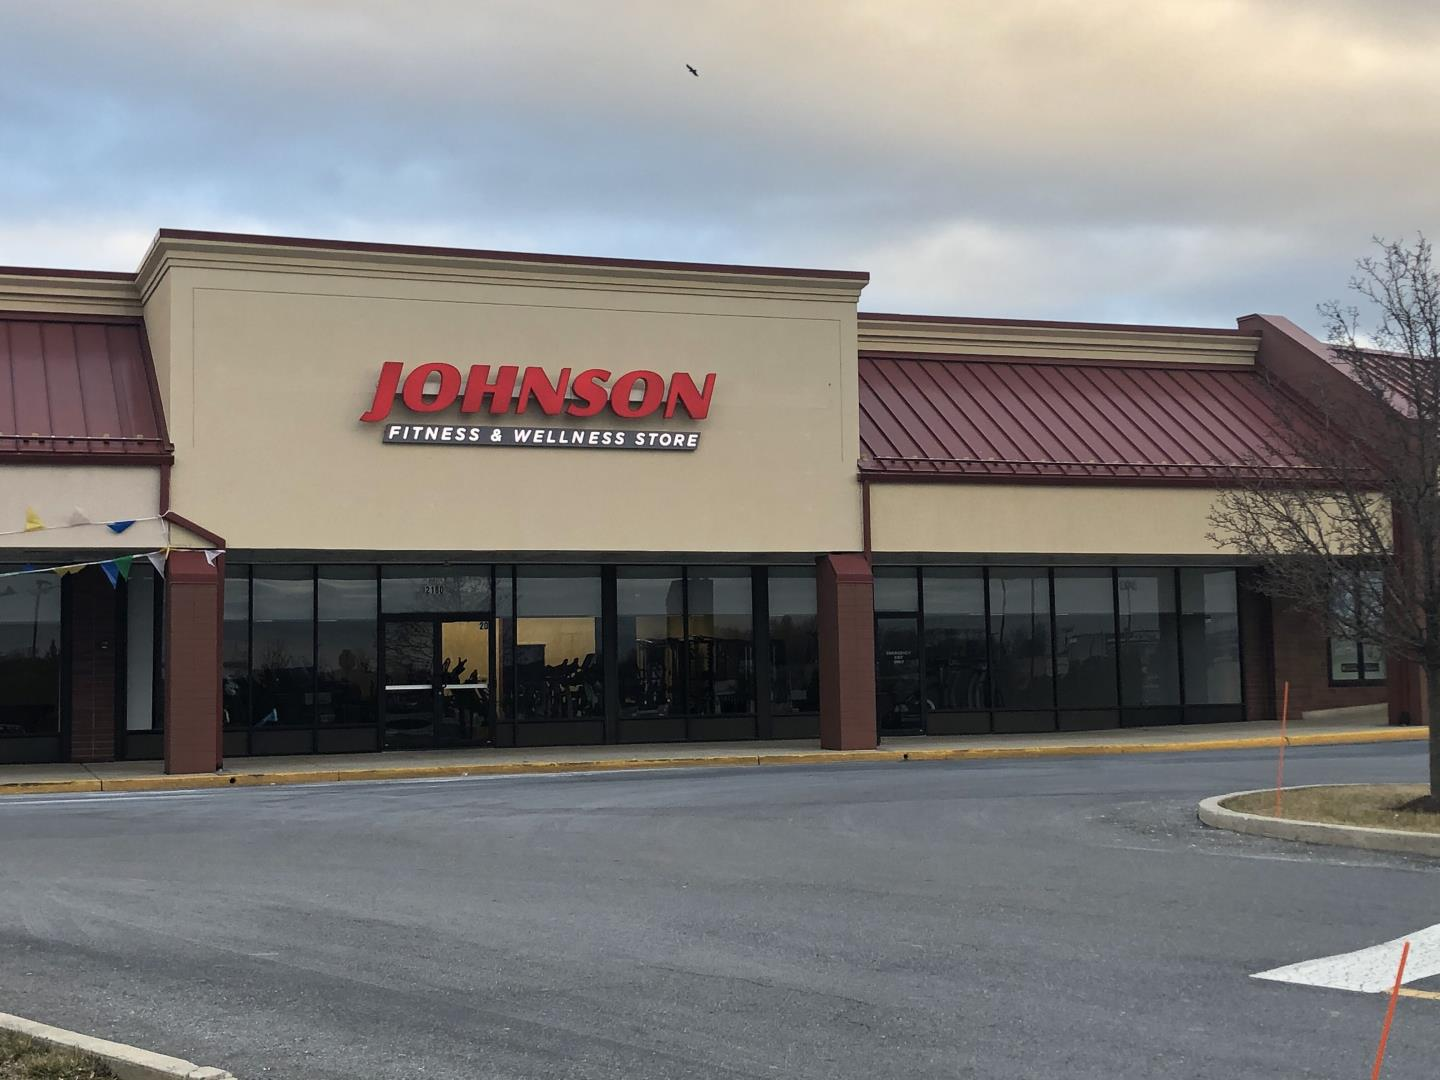 Johnson Fitness & Wellness - Allentown, PA